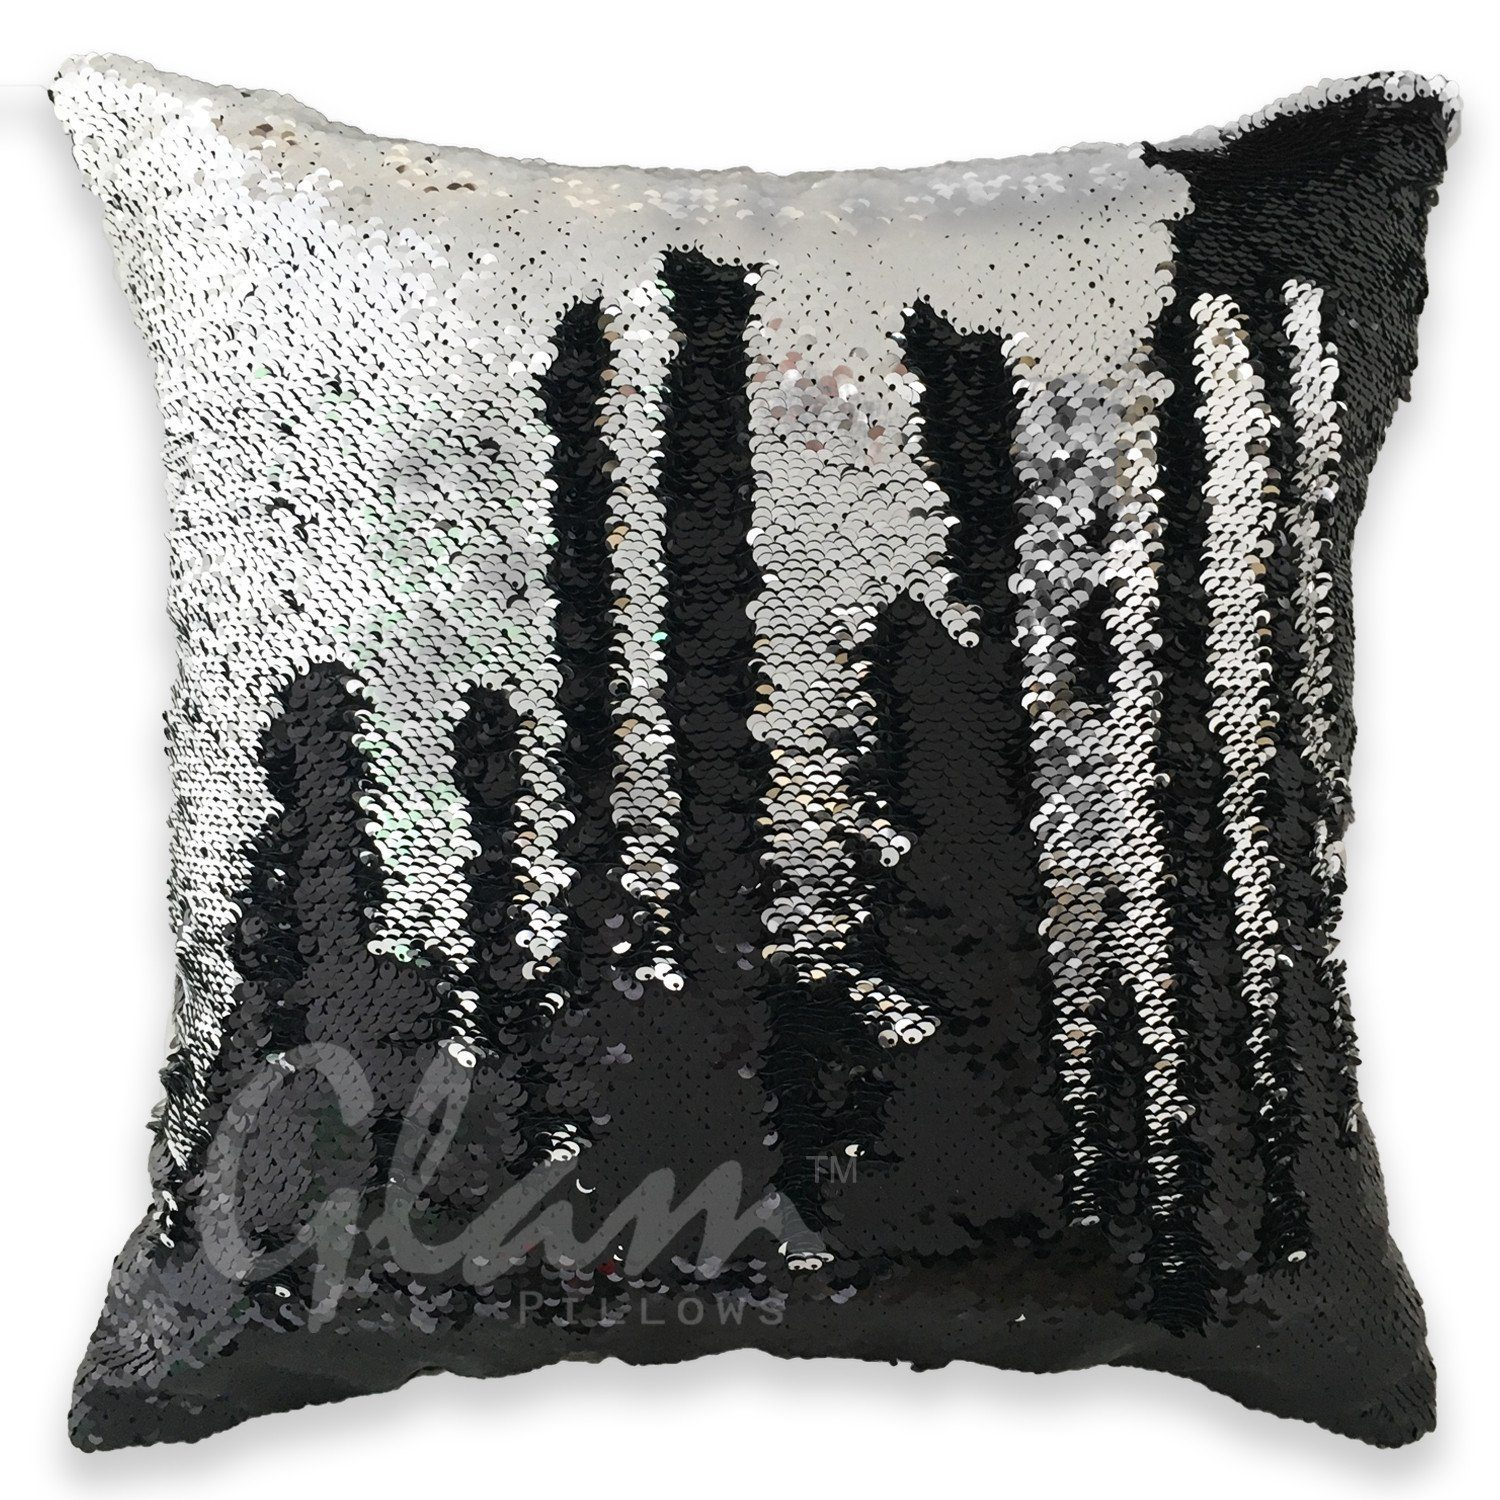 Black & Silver Reversible Sequin Glam Pillow is part of Silver Home Accents Guest Rooms - The Black & Silver Glam Pillow will instantly become the main attraction in any room  Sparkly yet sophisticated  Just like you  The lush reversible sequins can be brushed back and forth, allowing you to endlessly change and customize your pillow! Trust us, you won't be able to keep your hands off it   Includes Pillow Cover + Pillow Insert  Size 16x16   Color Black & Silver  Back Side Is SuperSoft Black Velvety Fabric With Zipper Closure